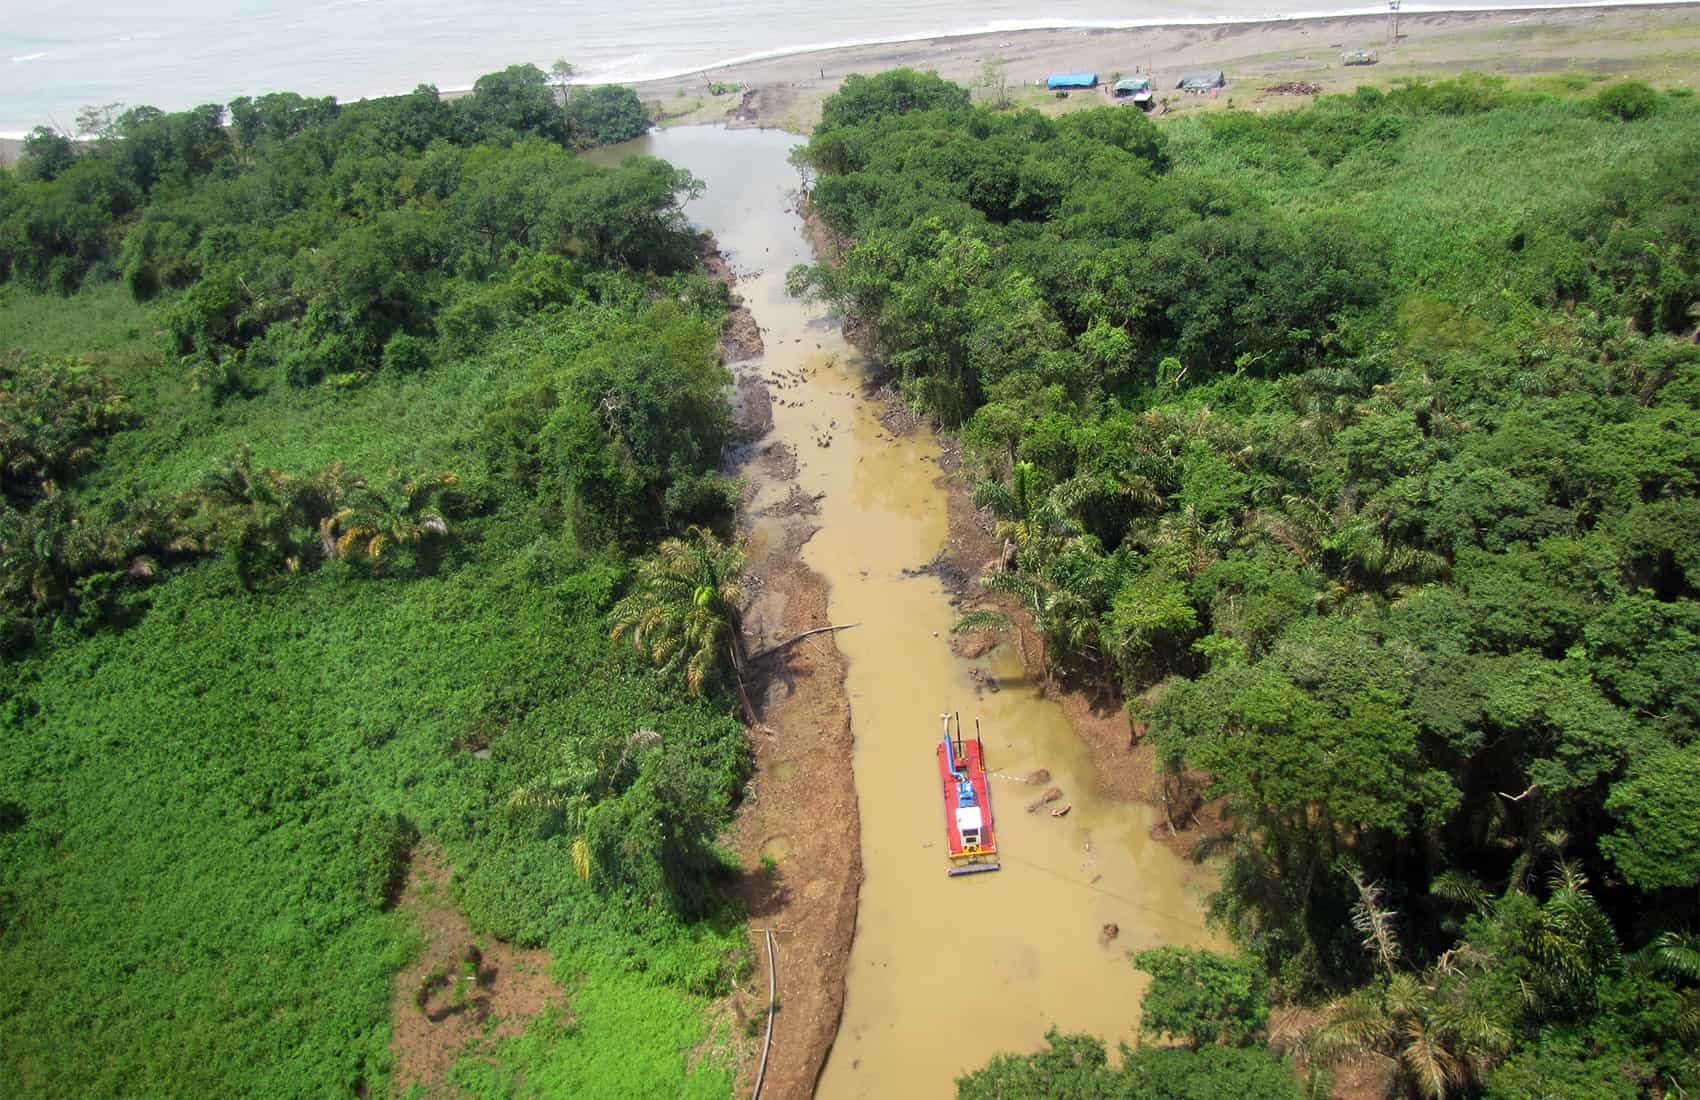 Illegal dredging in Costa Rica by Nicaraguan army